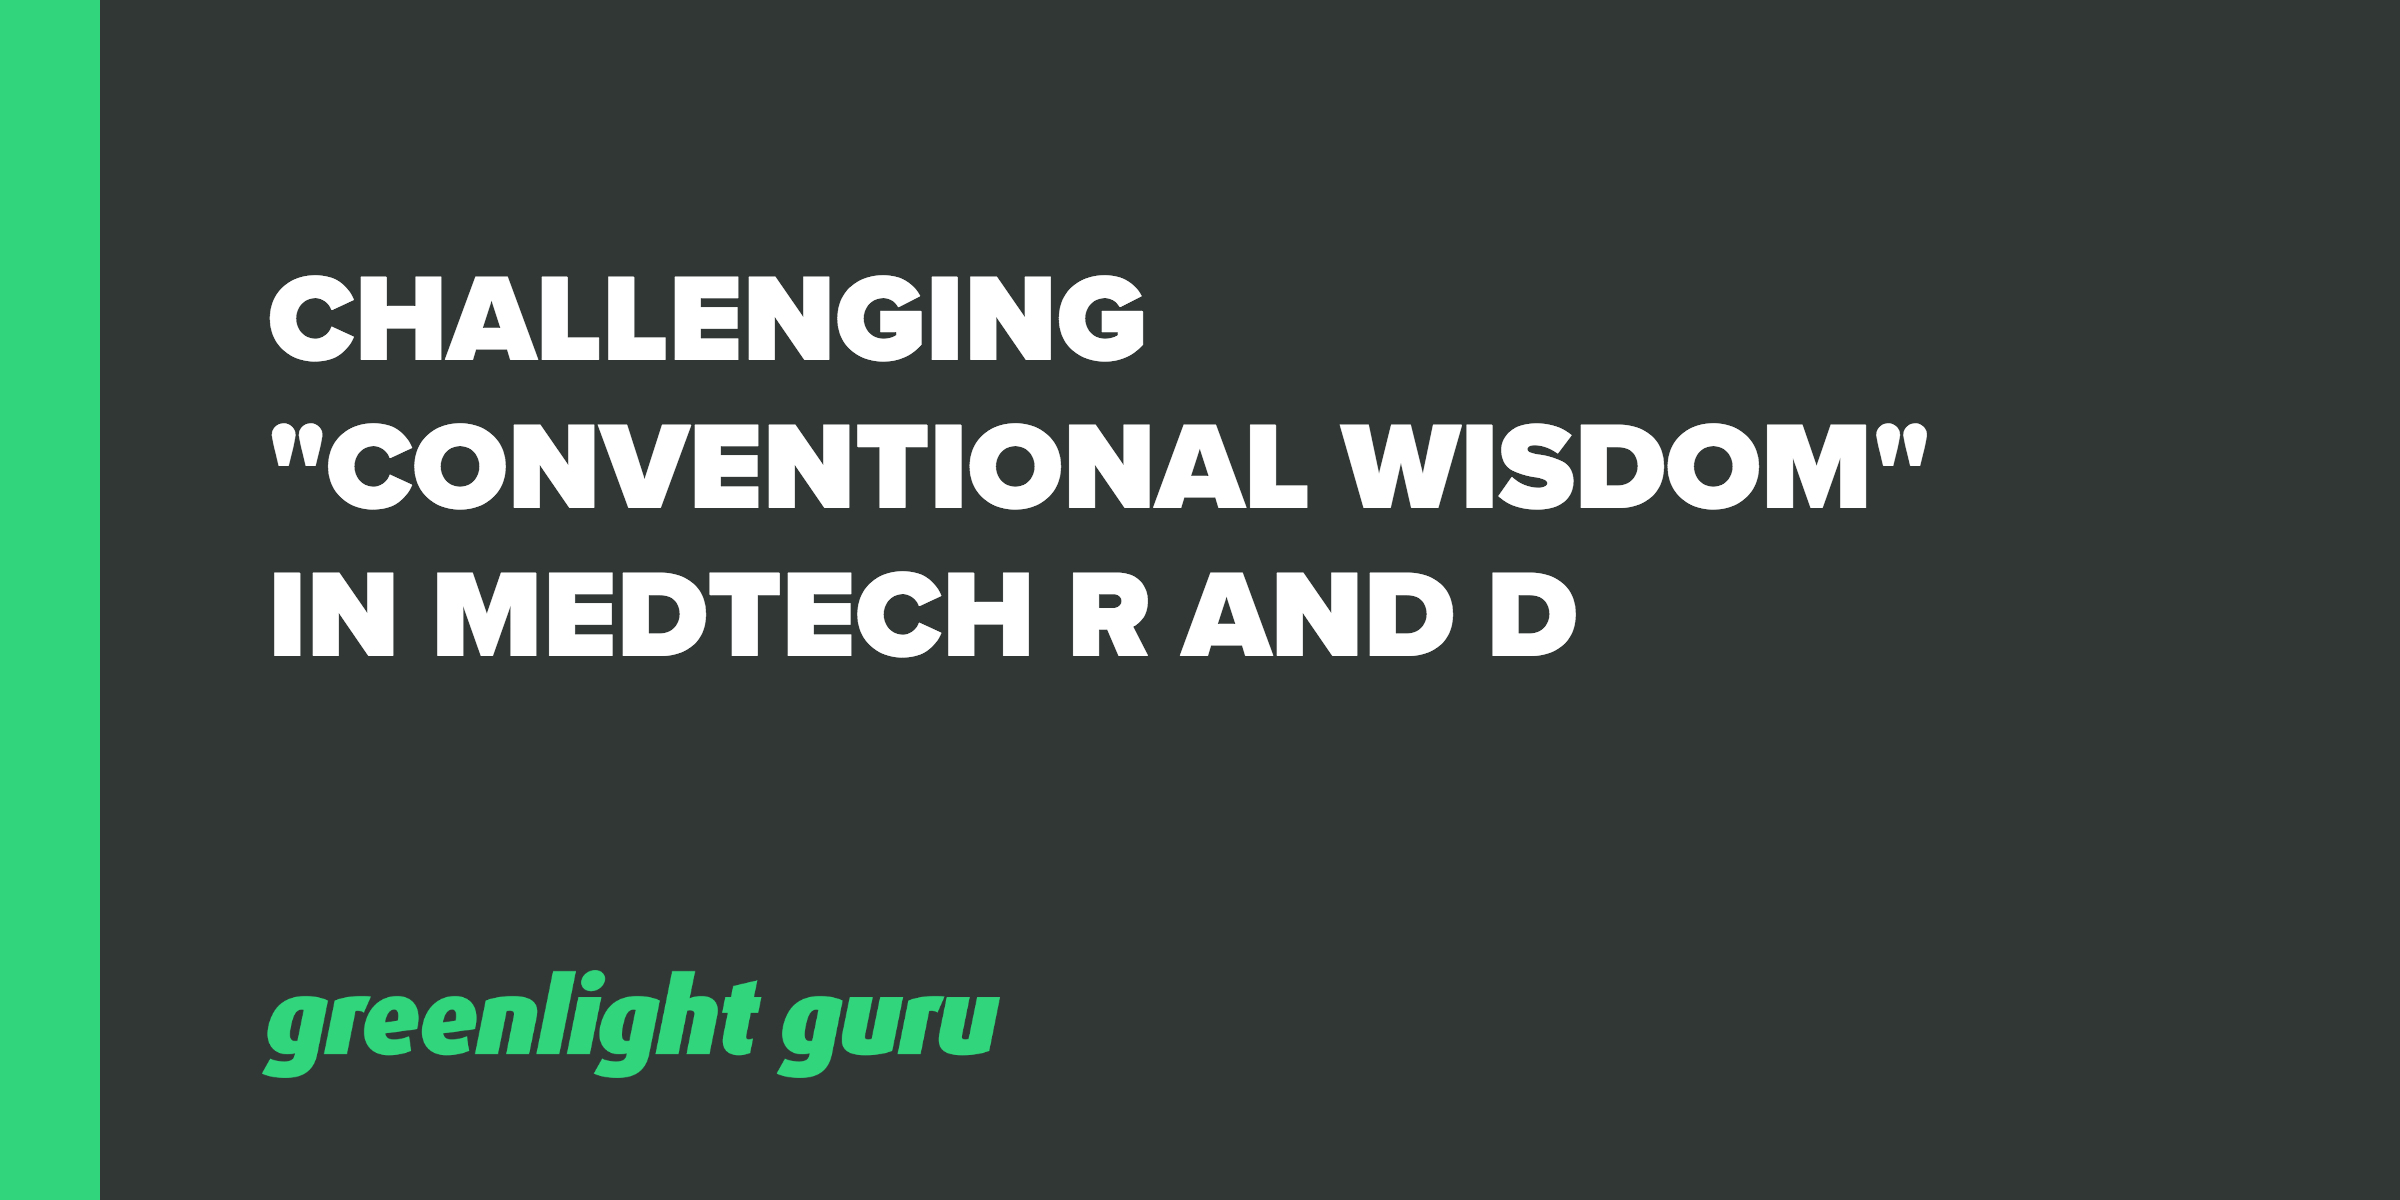 "Challenging ""Conventional Wisdom"" in Medtech R and D - Featured Image"